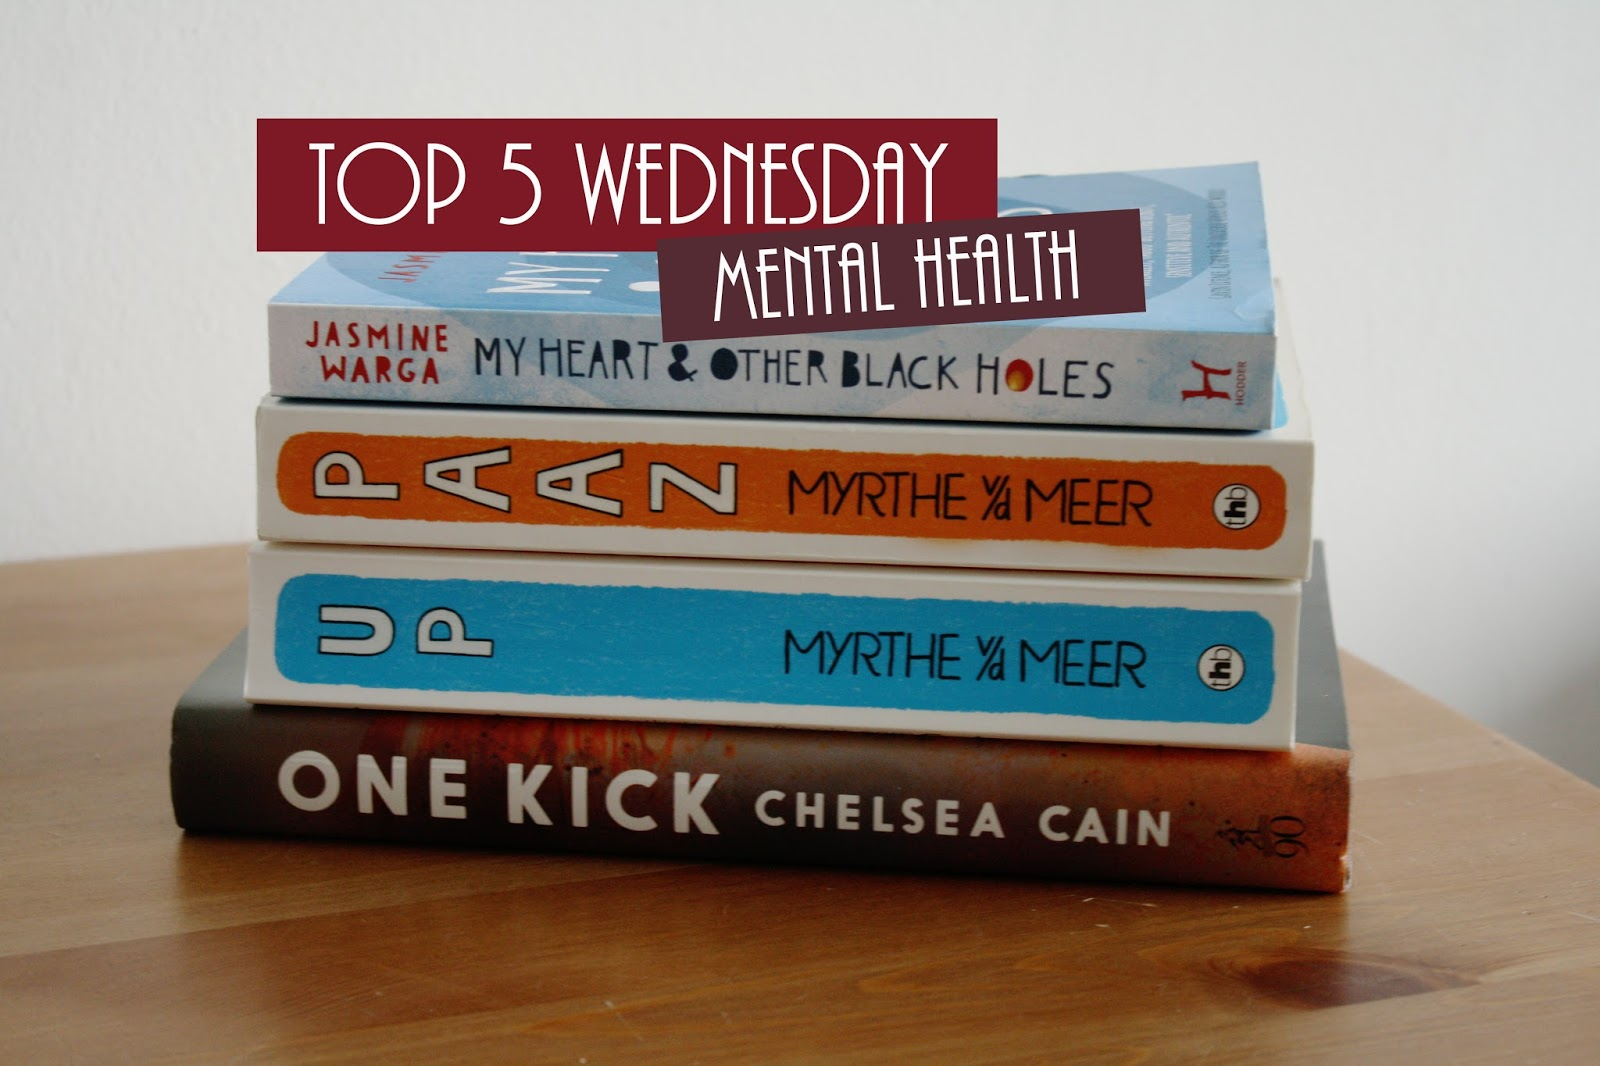 Top 5 Wednesday, Mental Health - thestoryhour.nl